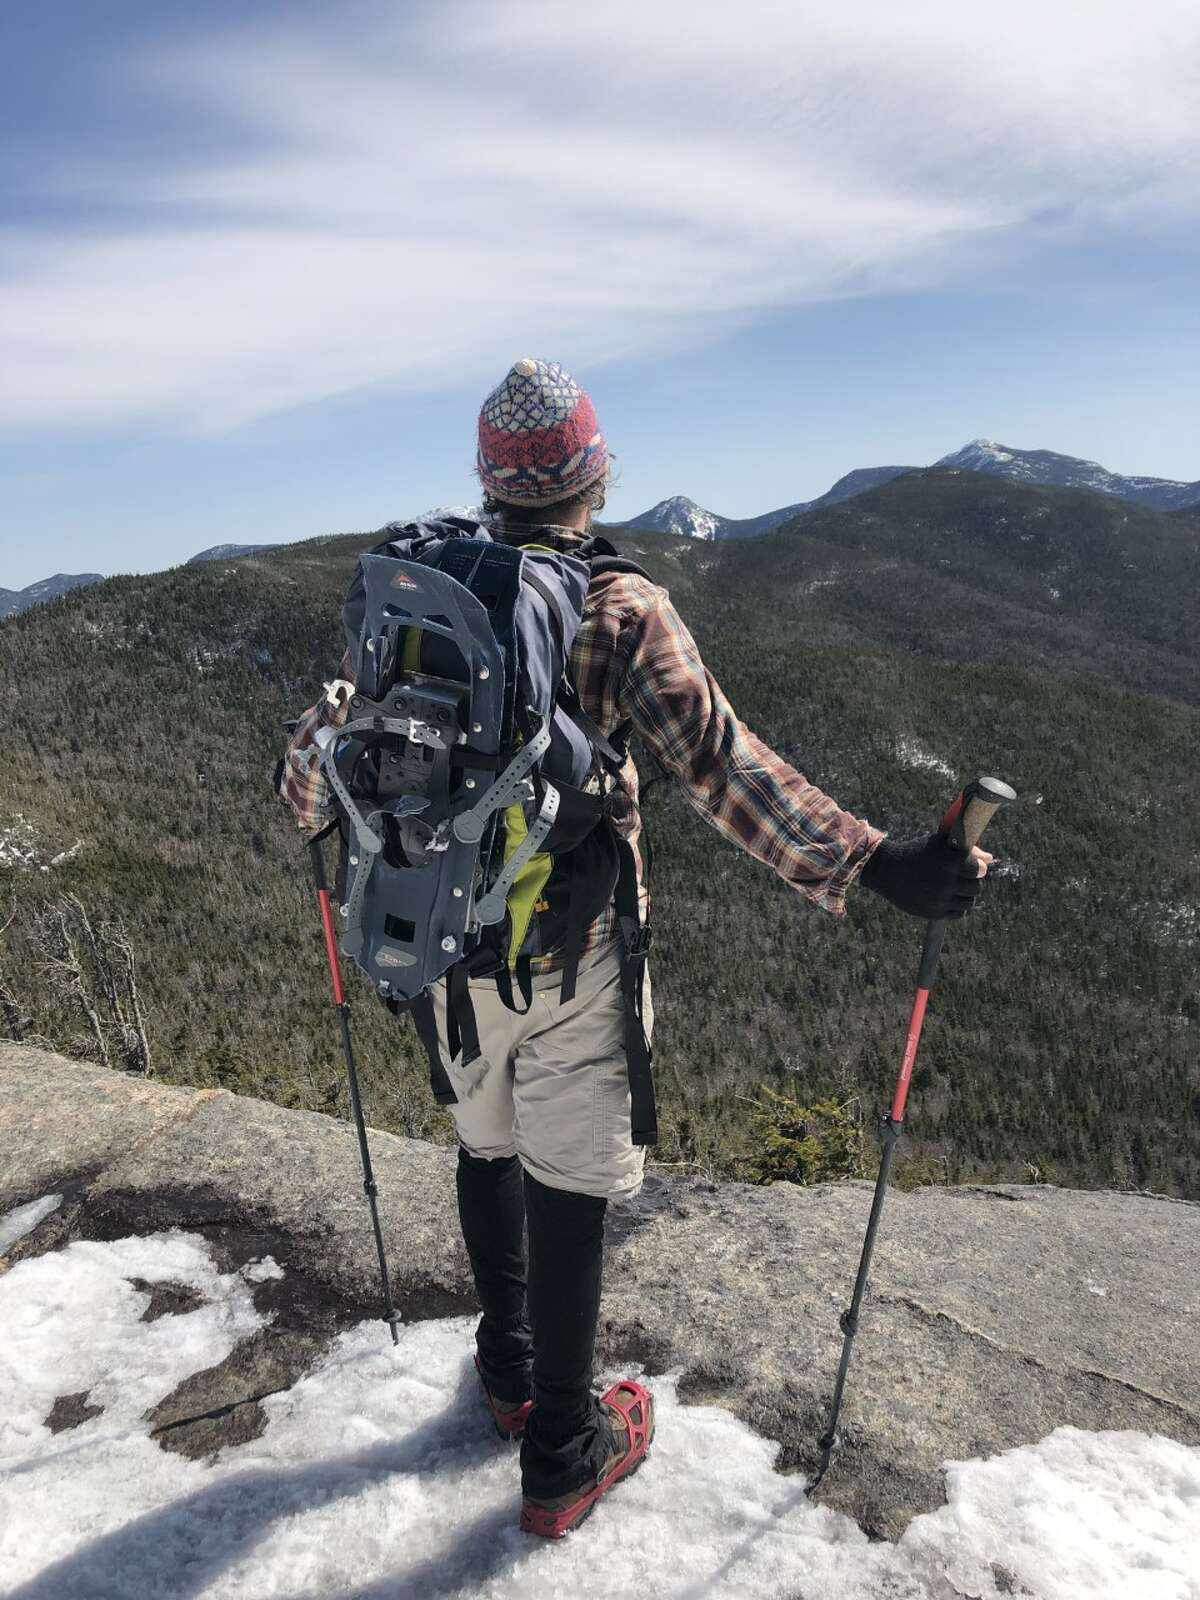 Author David Crews at the top of Phelps Mountain, one of the Adirondack High Peaks.